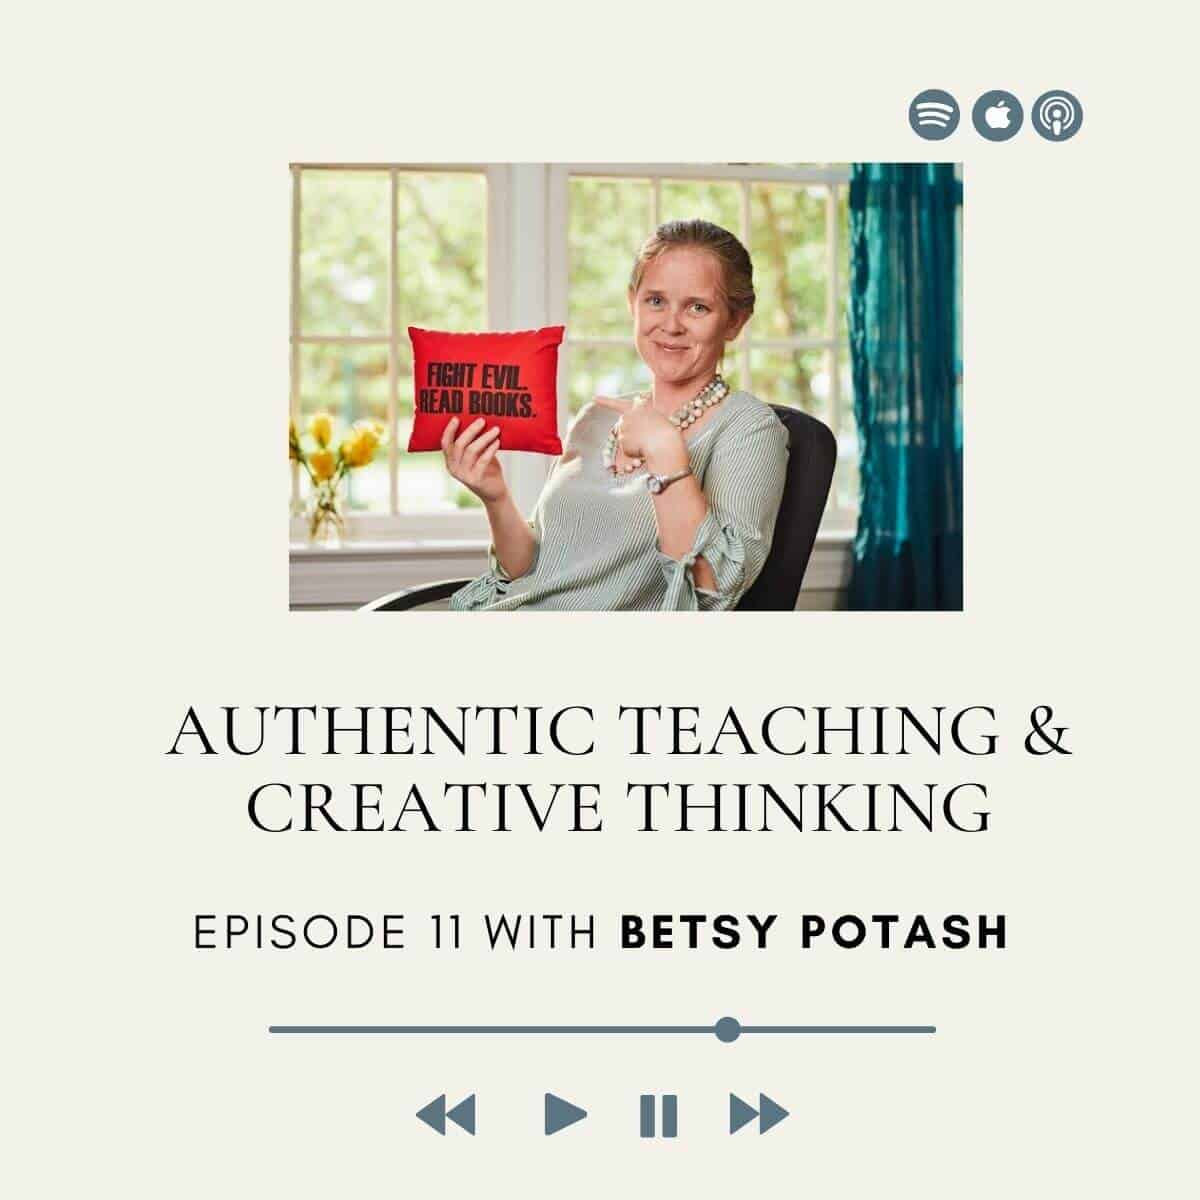 Authentic Teaching and Creative Thinking with Betsy Potash